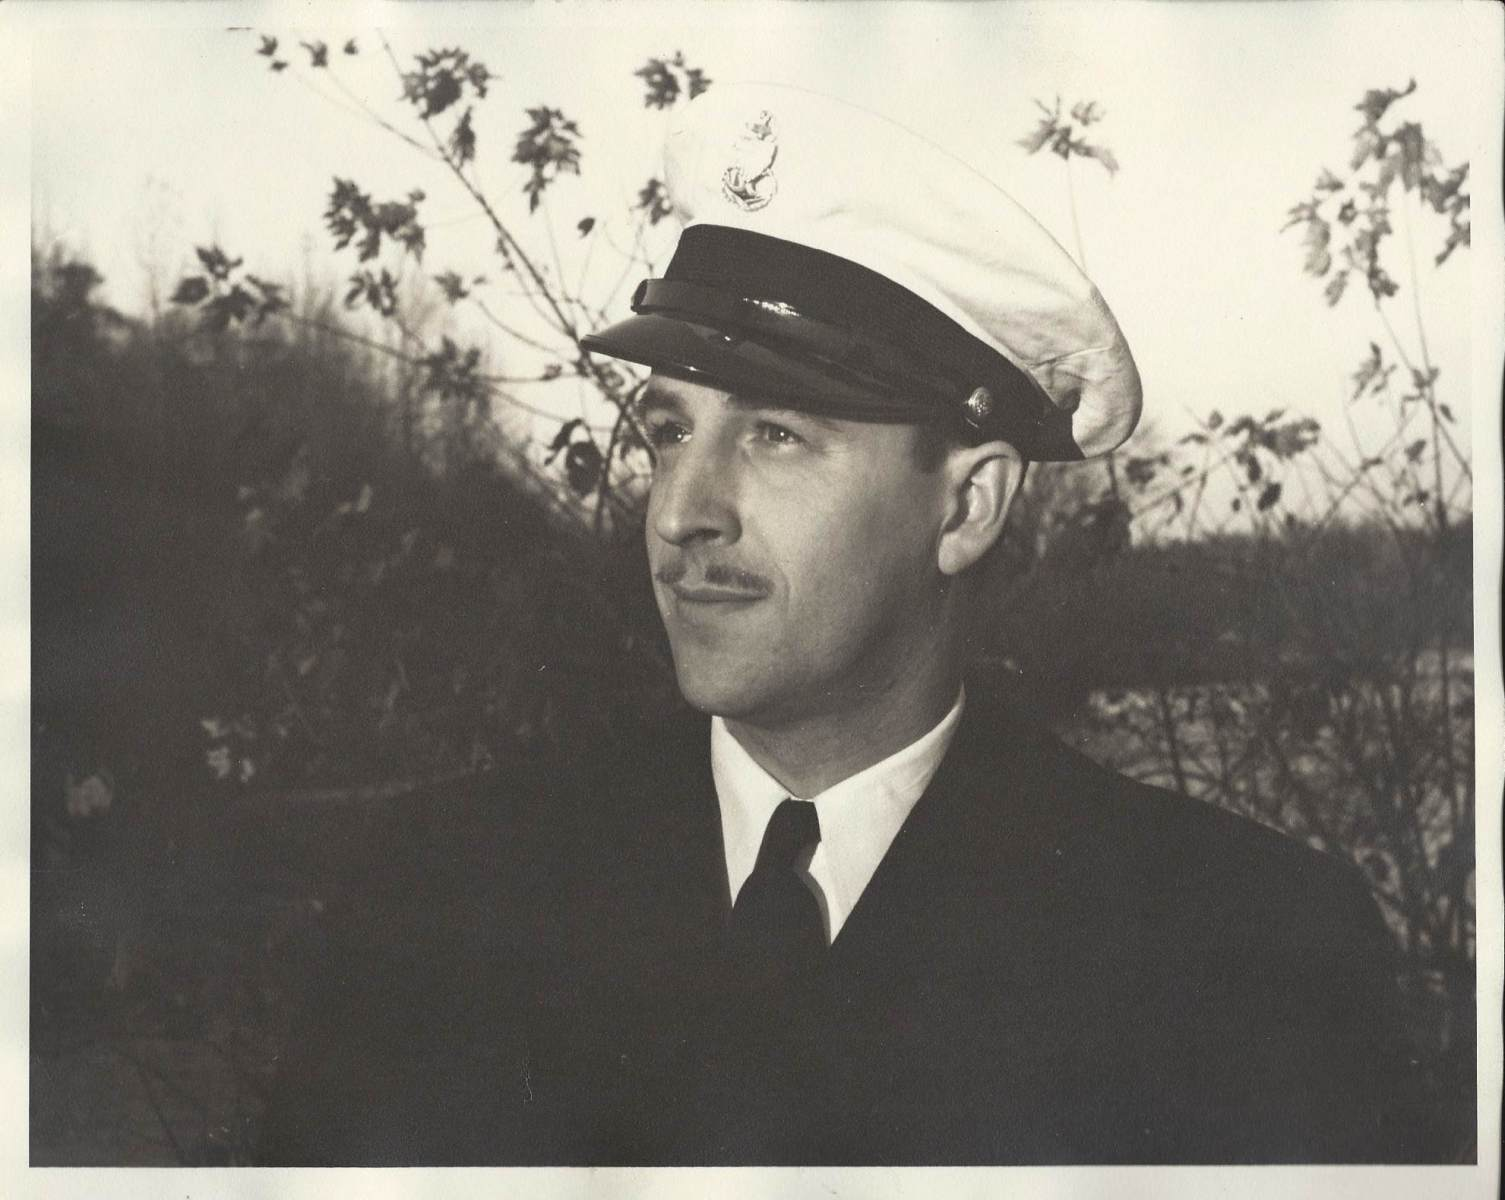 Chief Petty Officer Lester W. Bentley